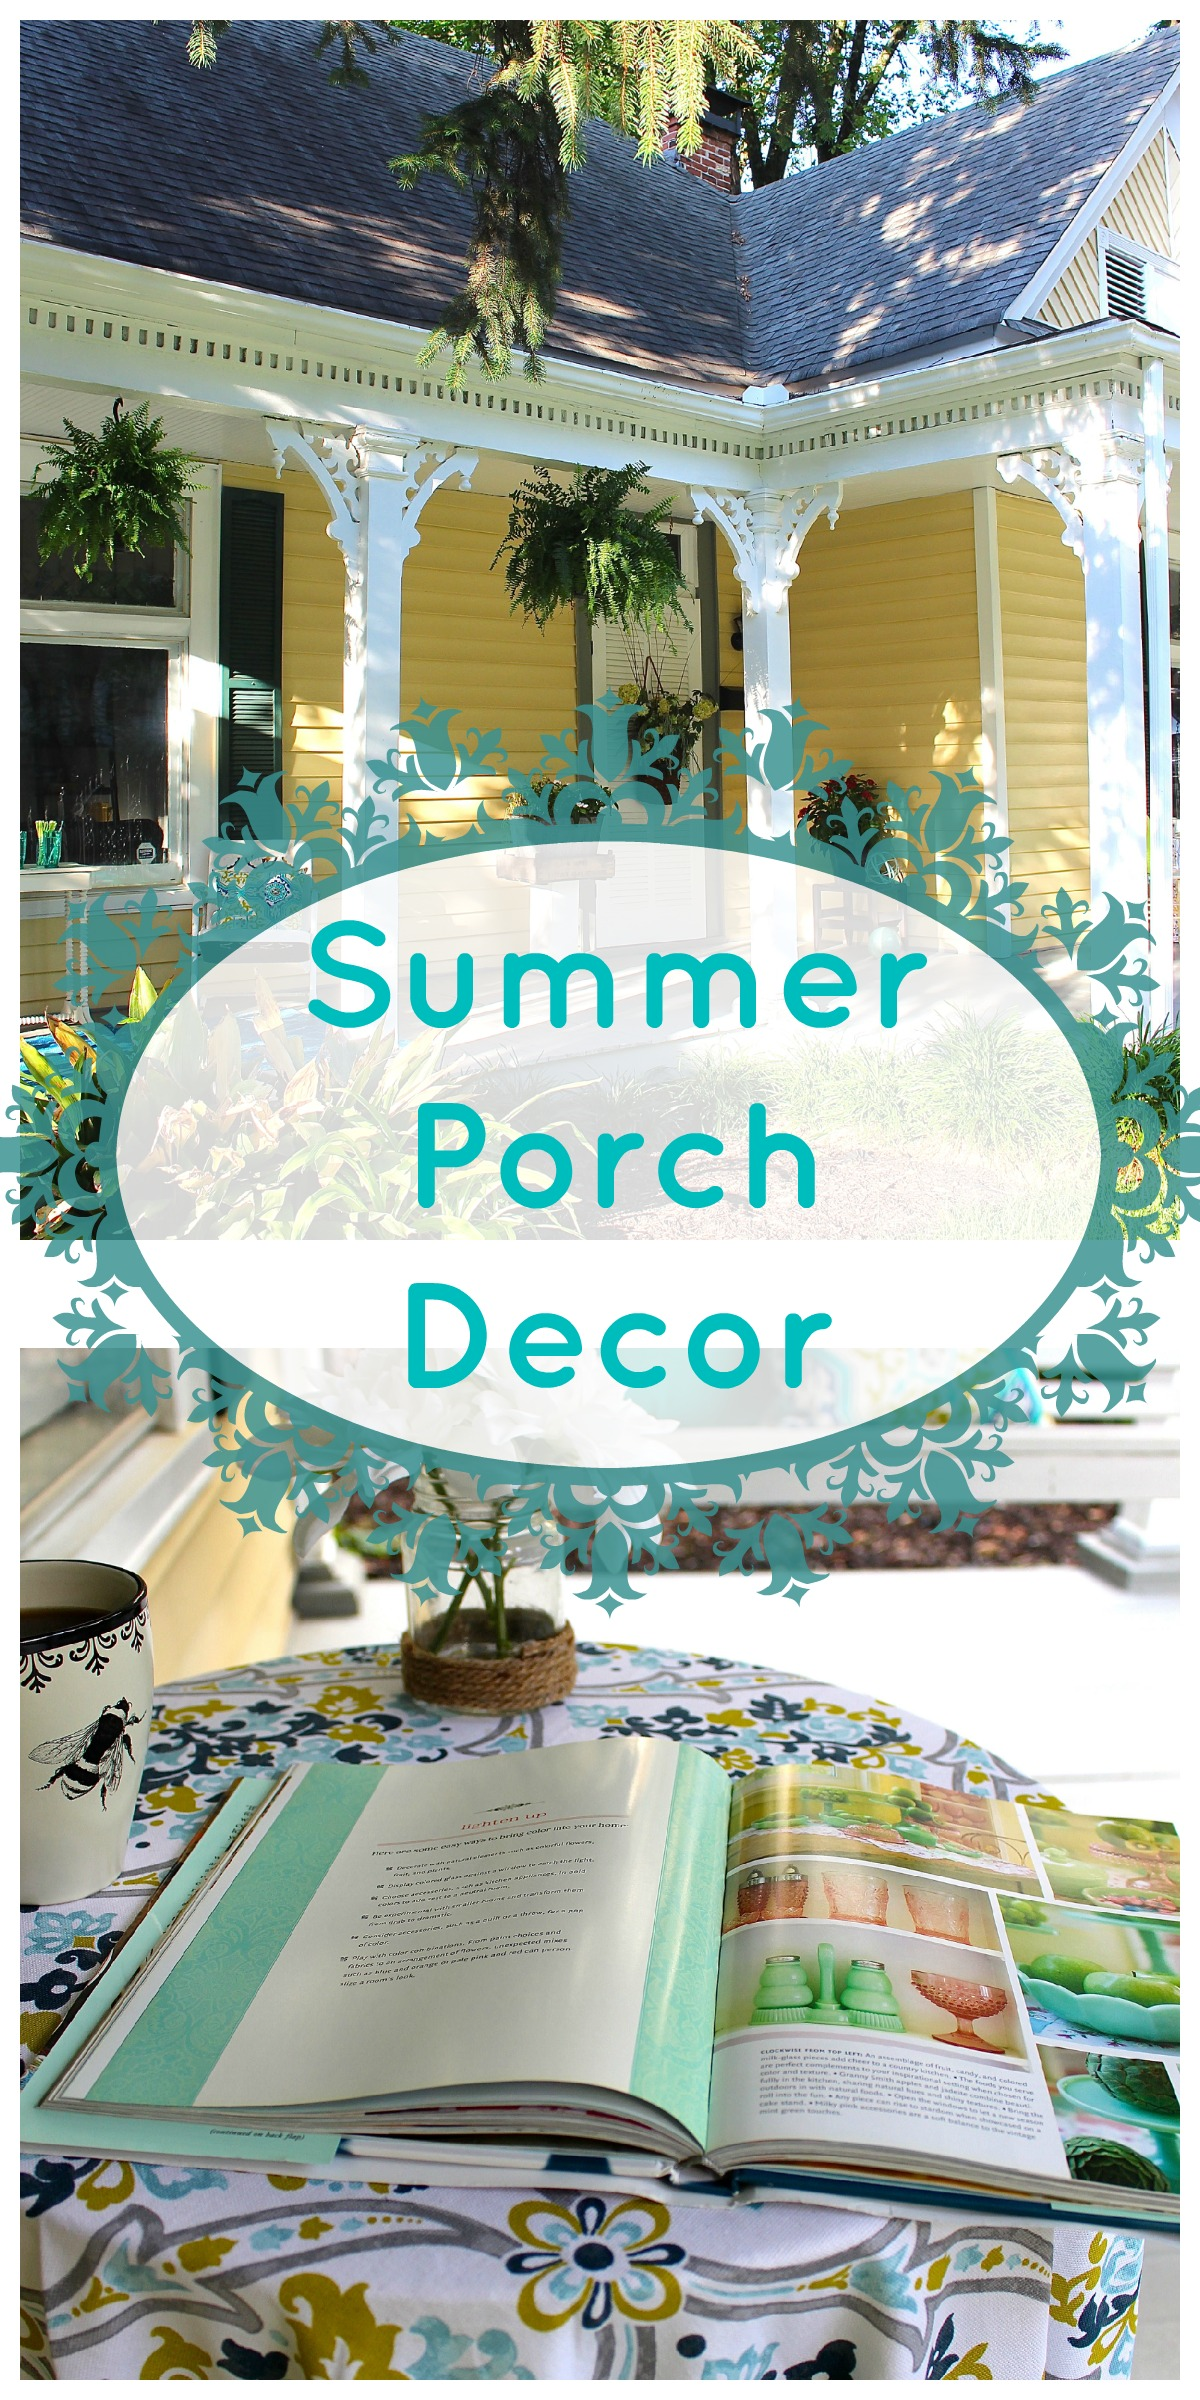 Summer Porch Decor Collage